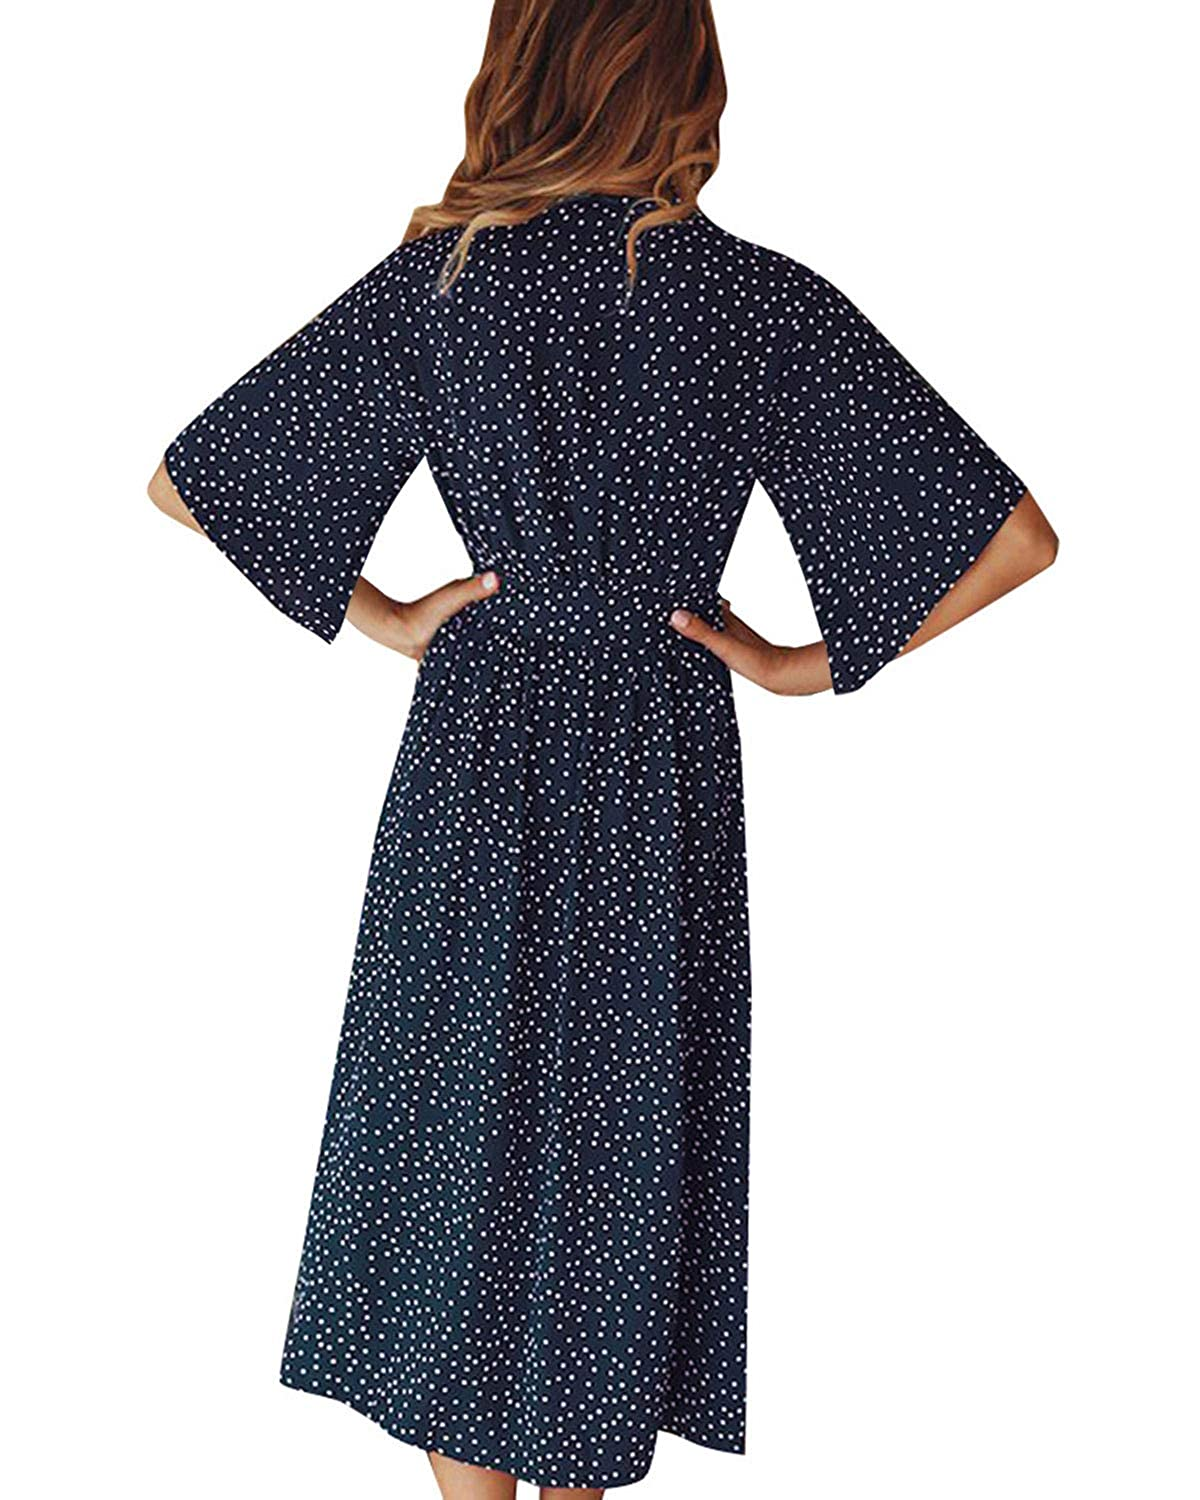 9c4f904d0a94 SOLERSUN Women's V Neck Polka Dot Loose Swing Casual Summer Tie Front Midi  Dress at Amazon Women's Clothing store: